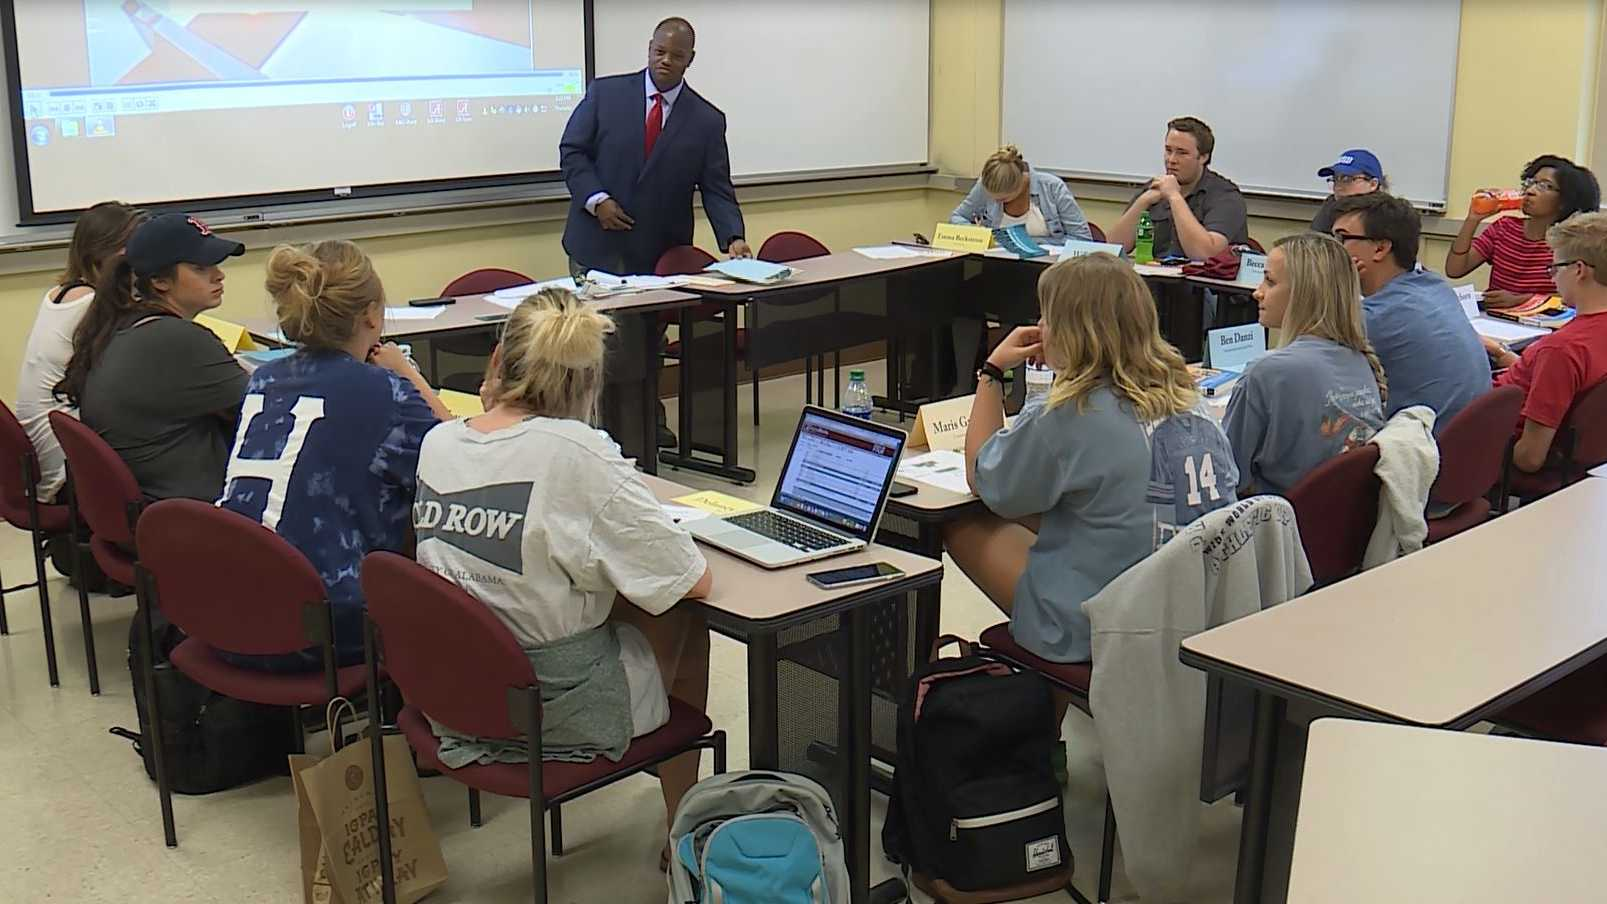 University of Alabama class discusses racial incidents after a student was suspended for social media comments